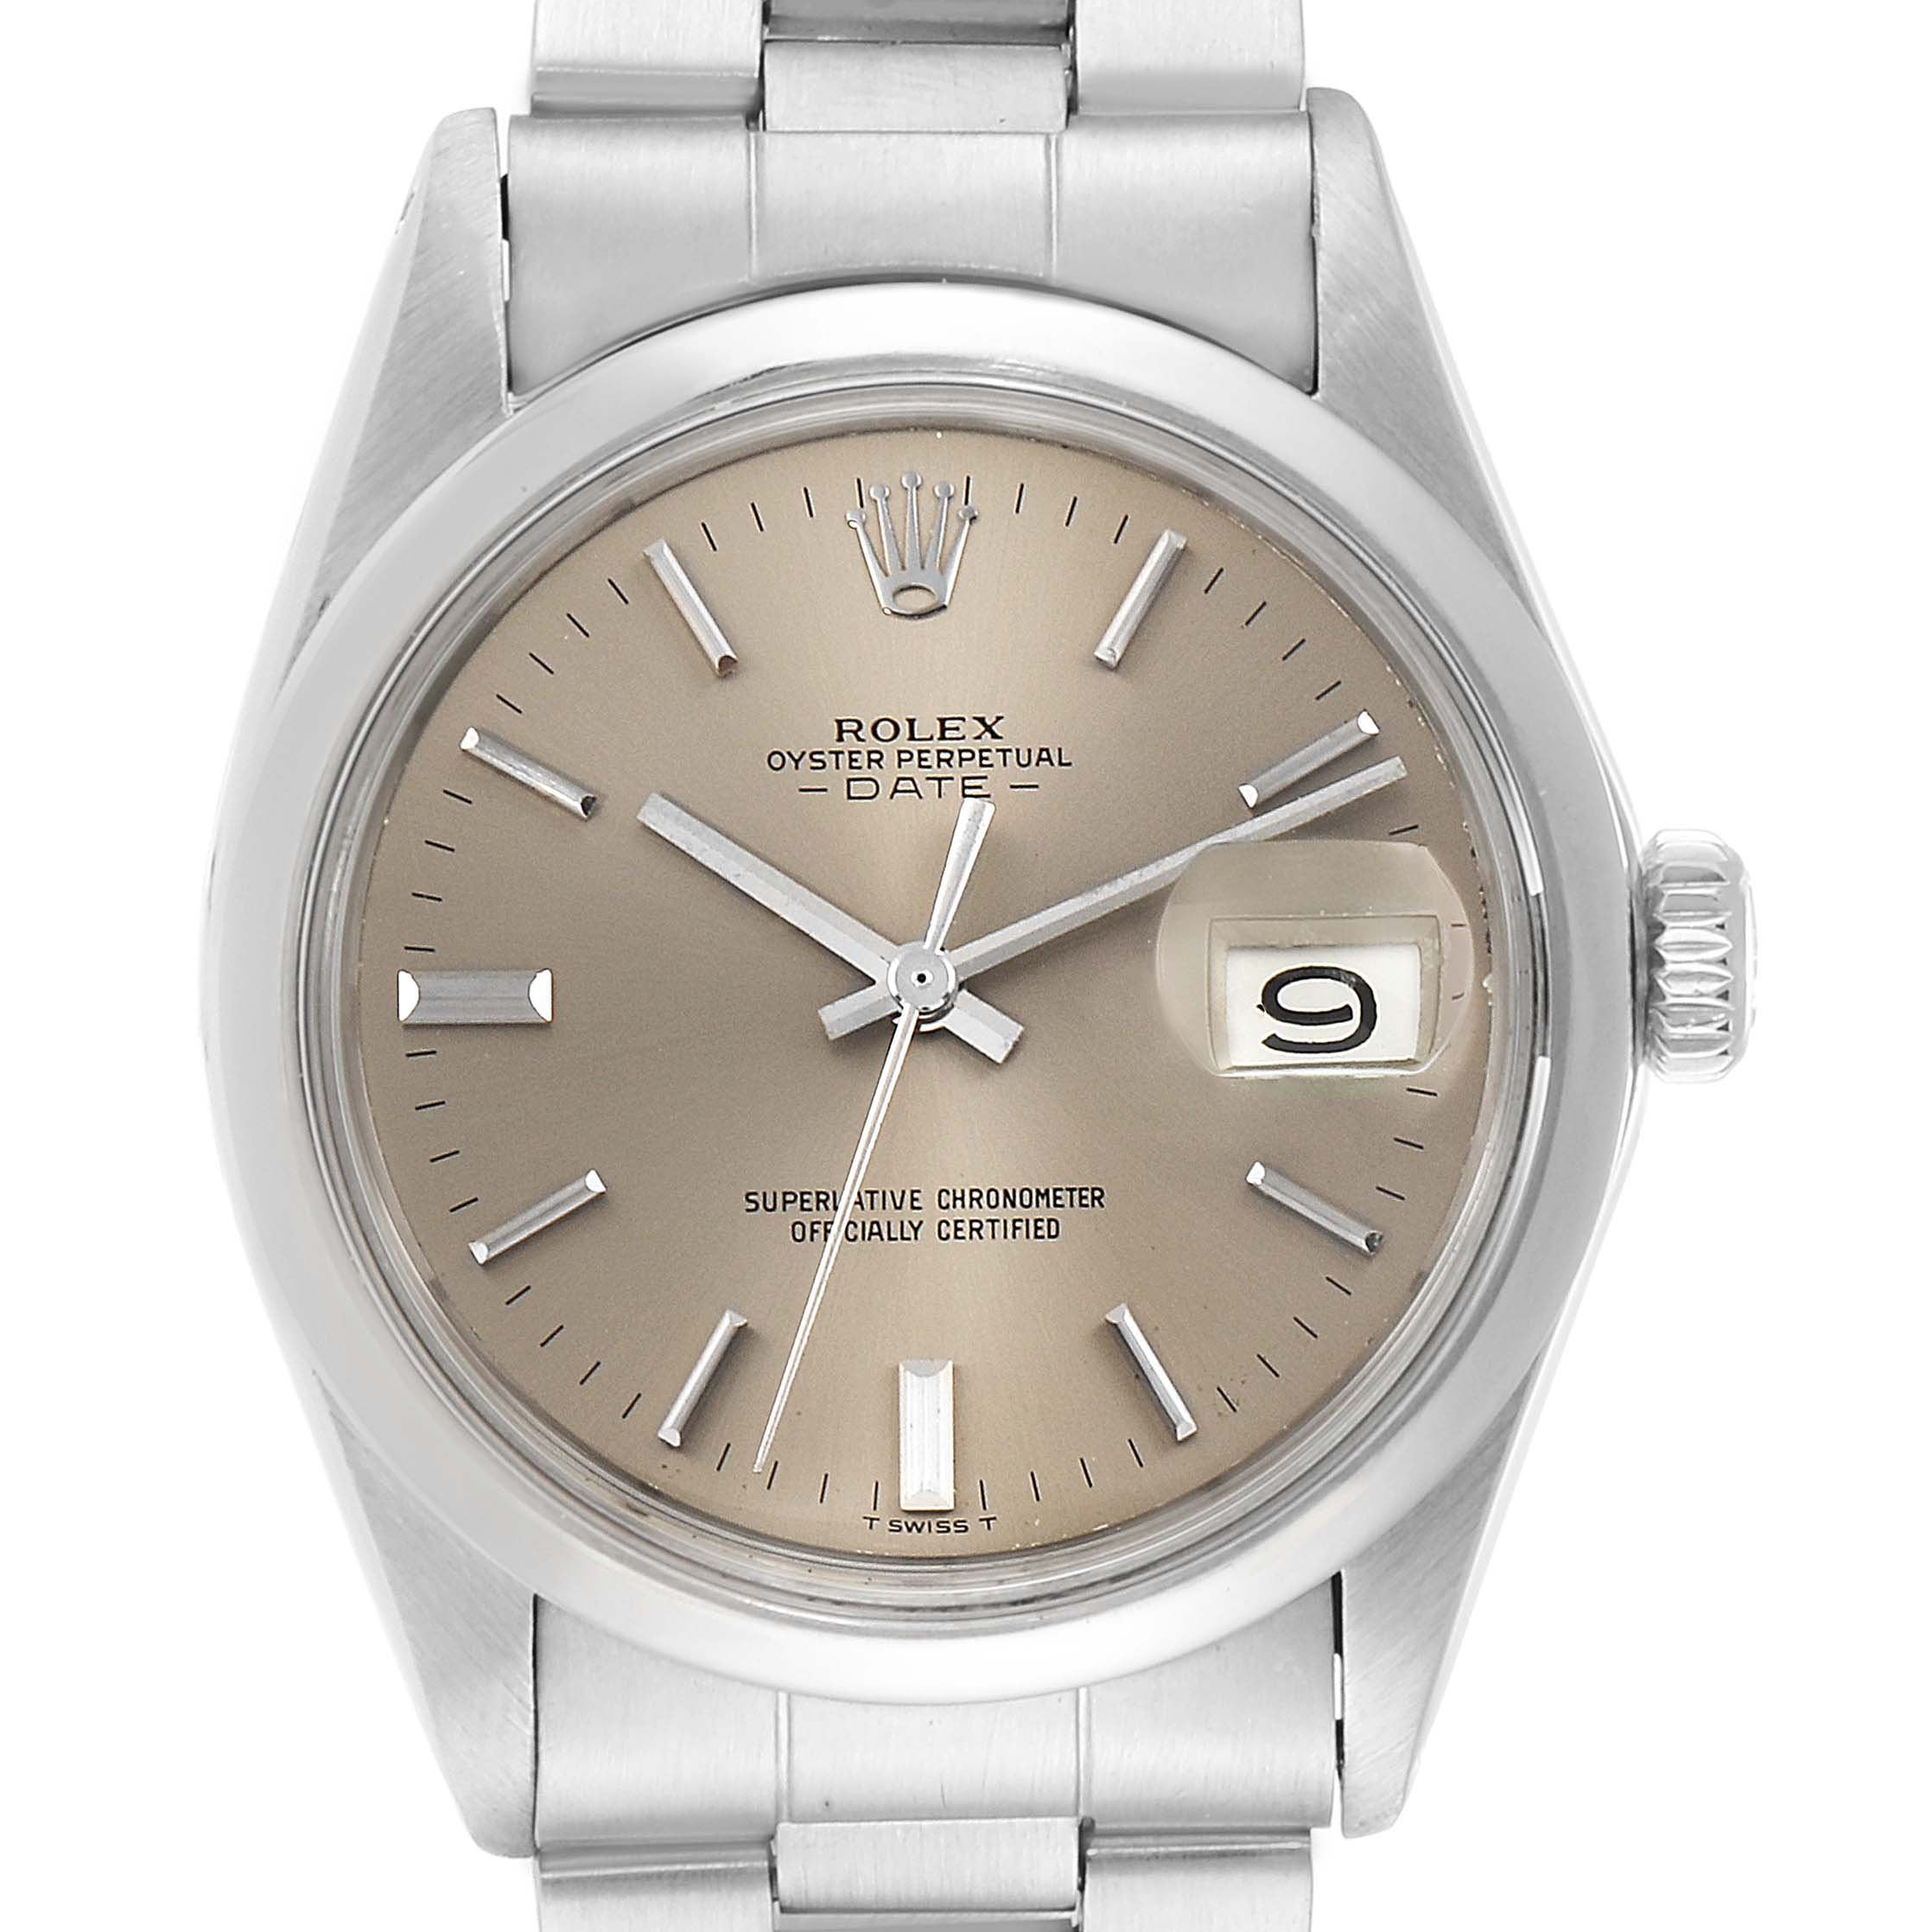 Photo of Rolex Date Grey Dial Domed Bezel Vintage Mens Watch 1500